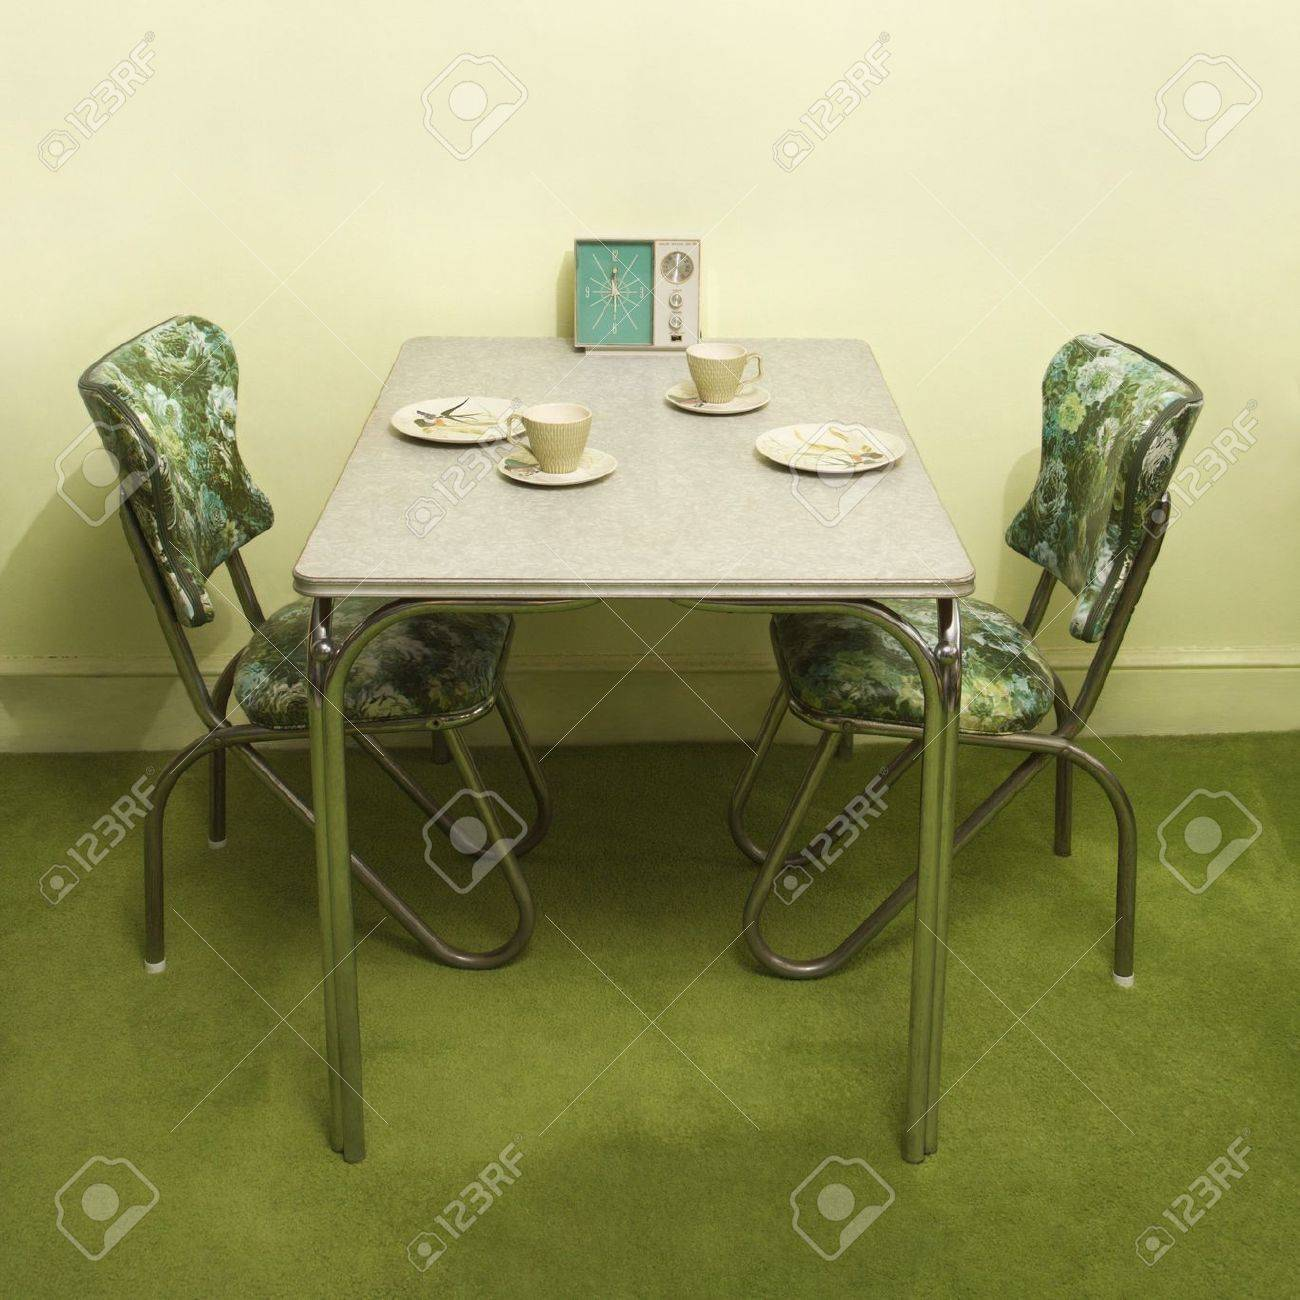 Chrome Dinette Chairs retro 50's formica and chrome dinette set with green vinyl chairs